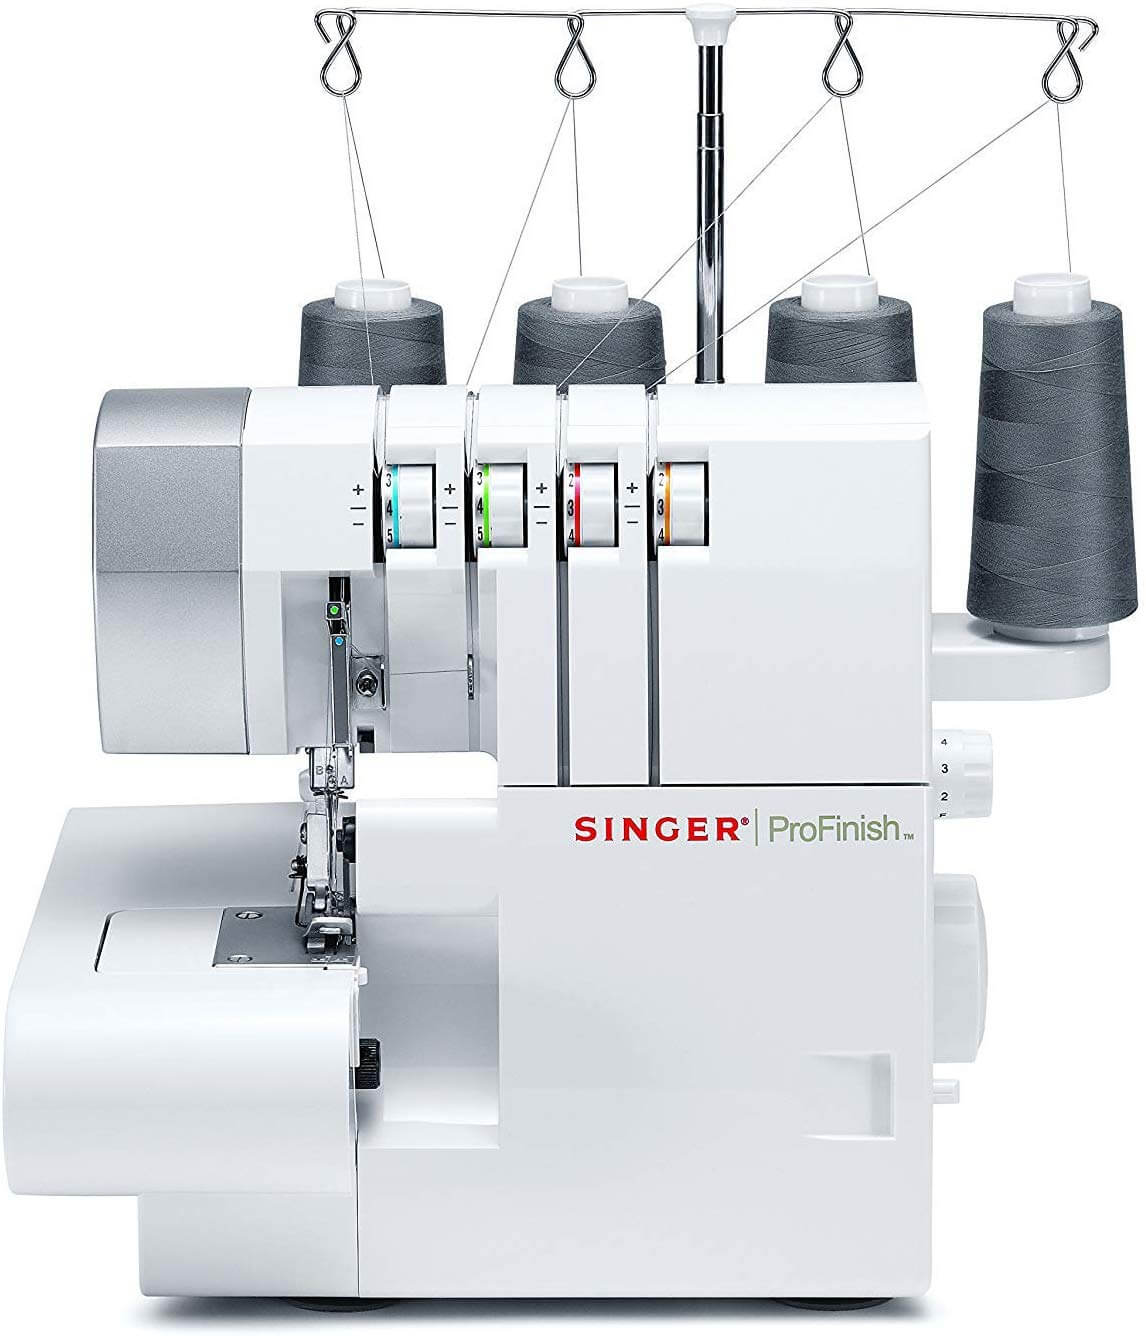 Singer 14CG754 Serger 2-3-4 Thread Capability Overlock with Blind